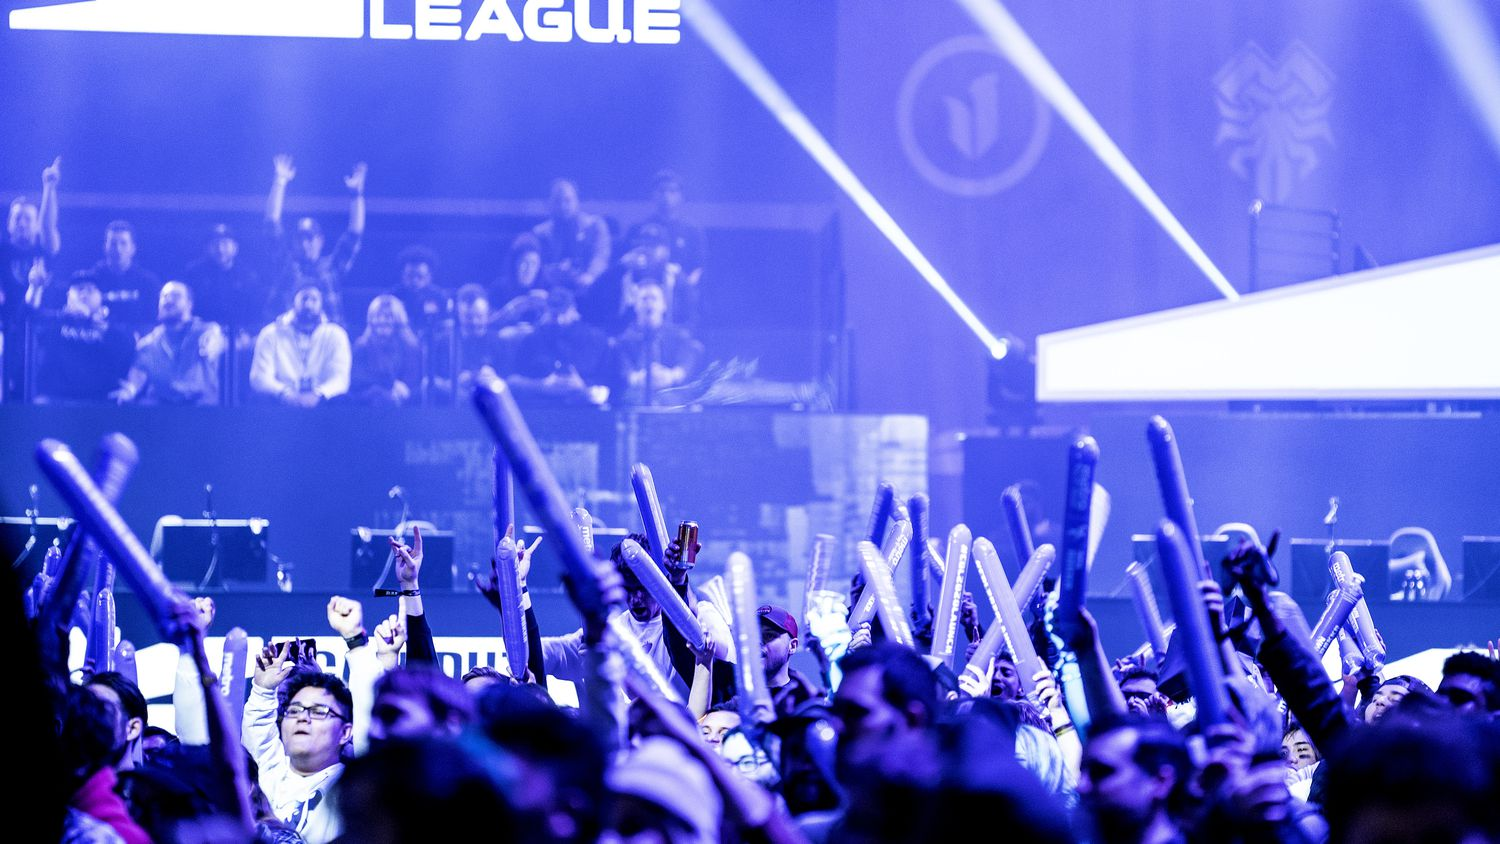 Fans cheer as Dallas Empire competes against Chicago Huntsmen in the Call of Duty League Launch Weekend at the Armory in Minneapolis, Minn., January 24, 2020.